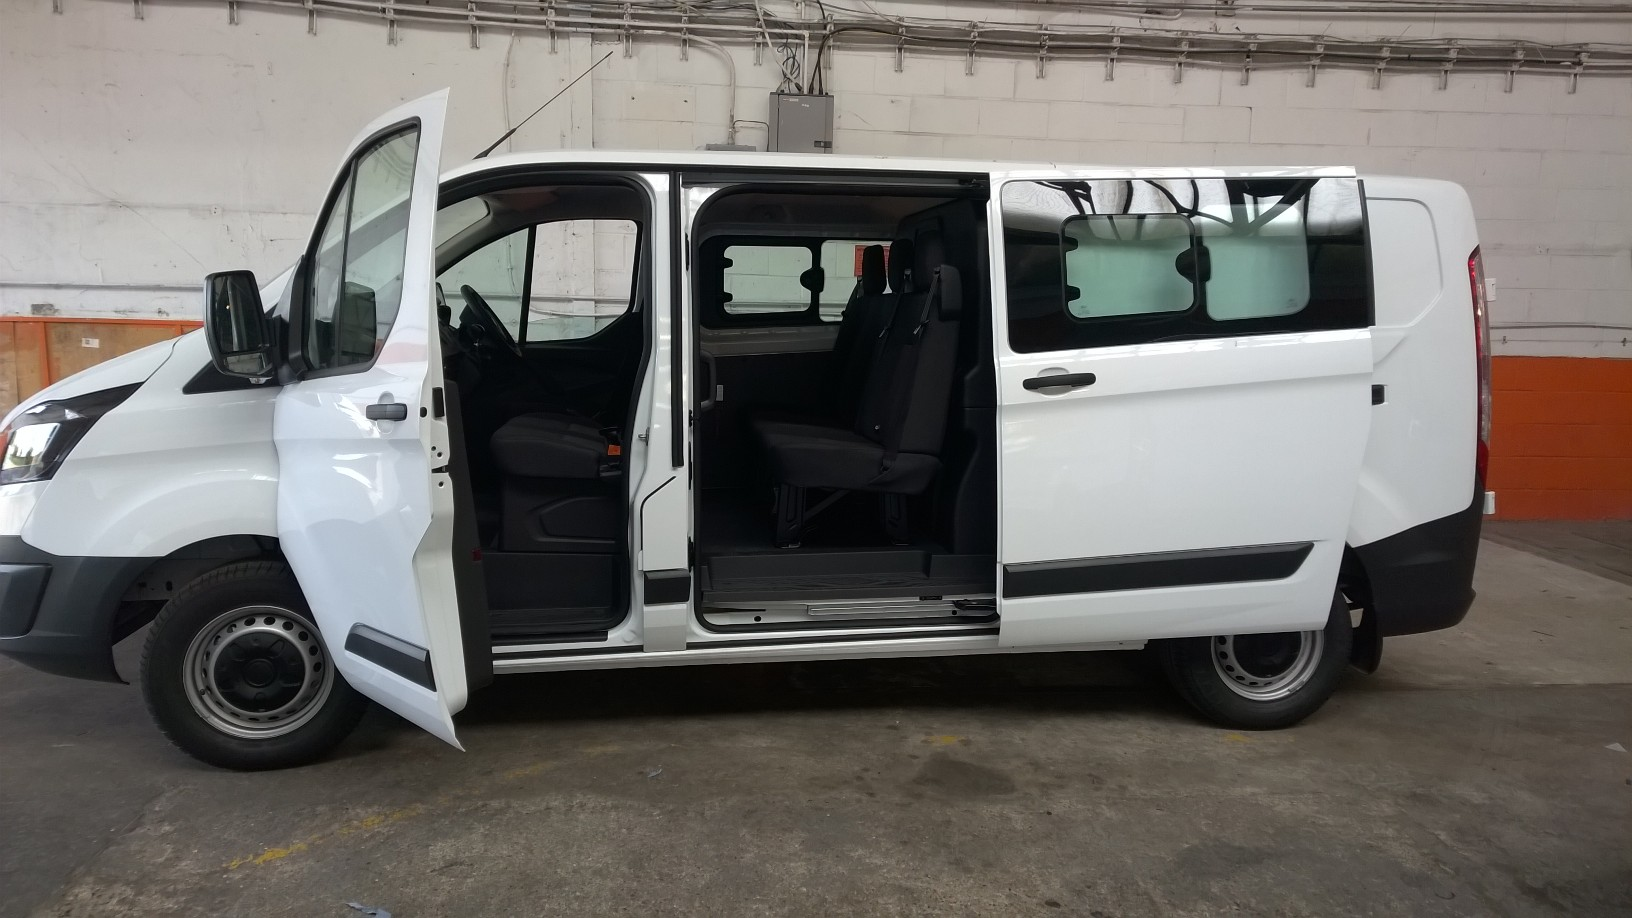 ford transit custom 6 seater crew van for hire in e3 e4 e5 e8 e9 e10 e11 e17 e18 n1 n5 n15 n16 n17. Black Bedroom Furniture Sets. Home Design Ideas